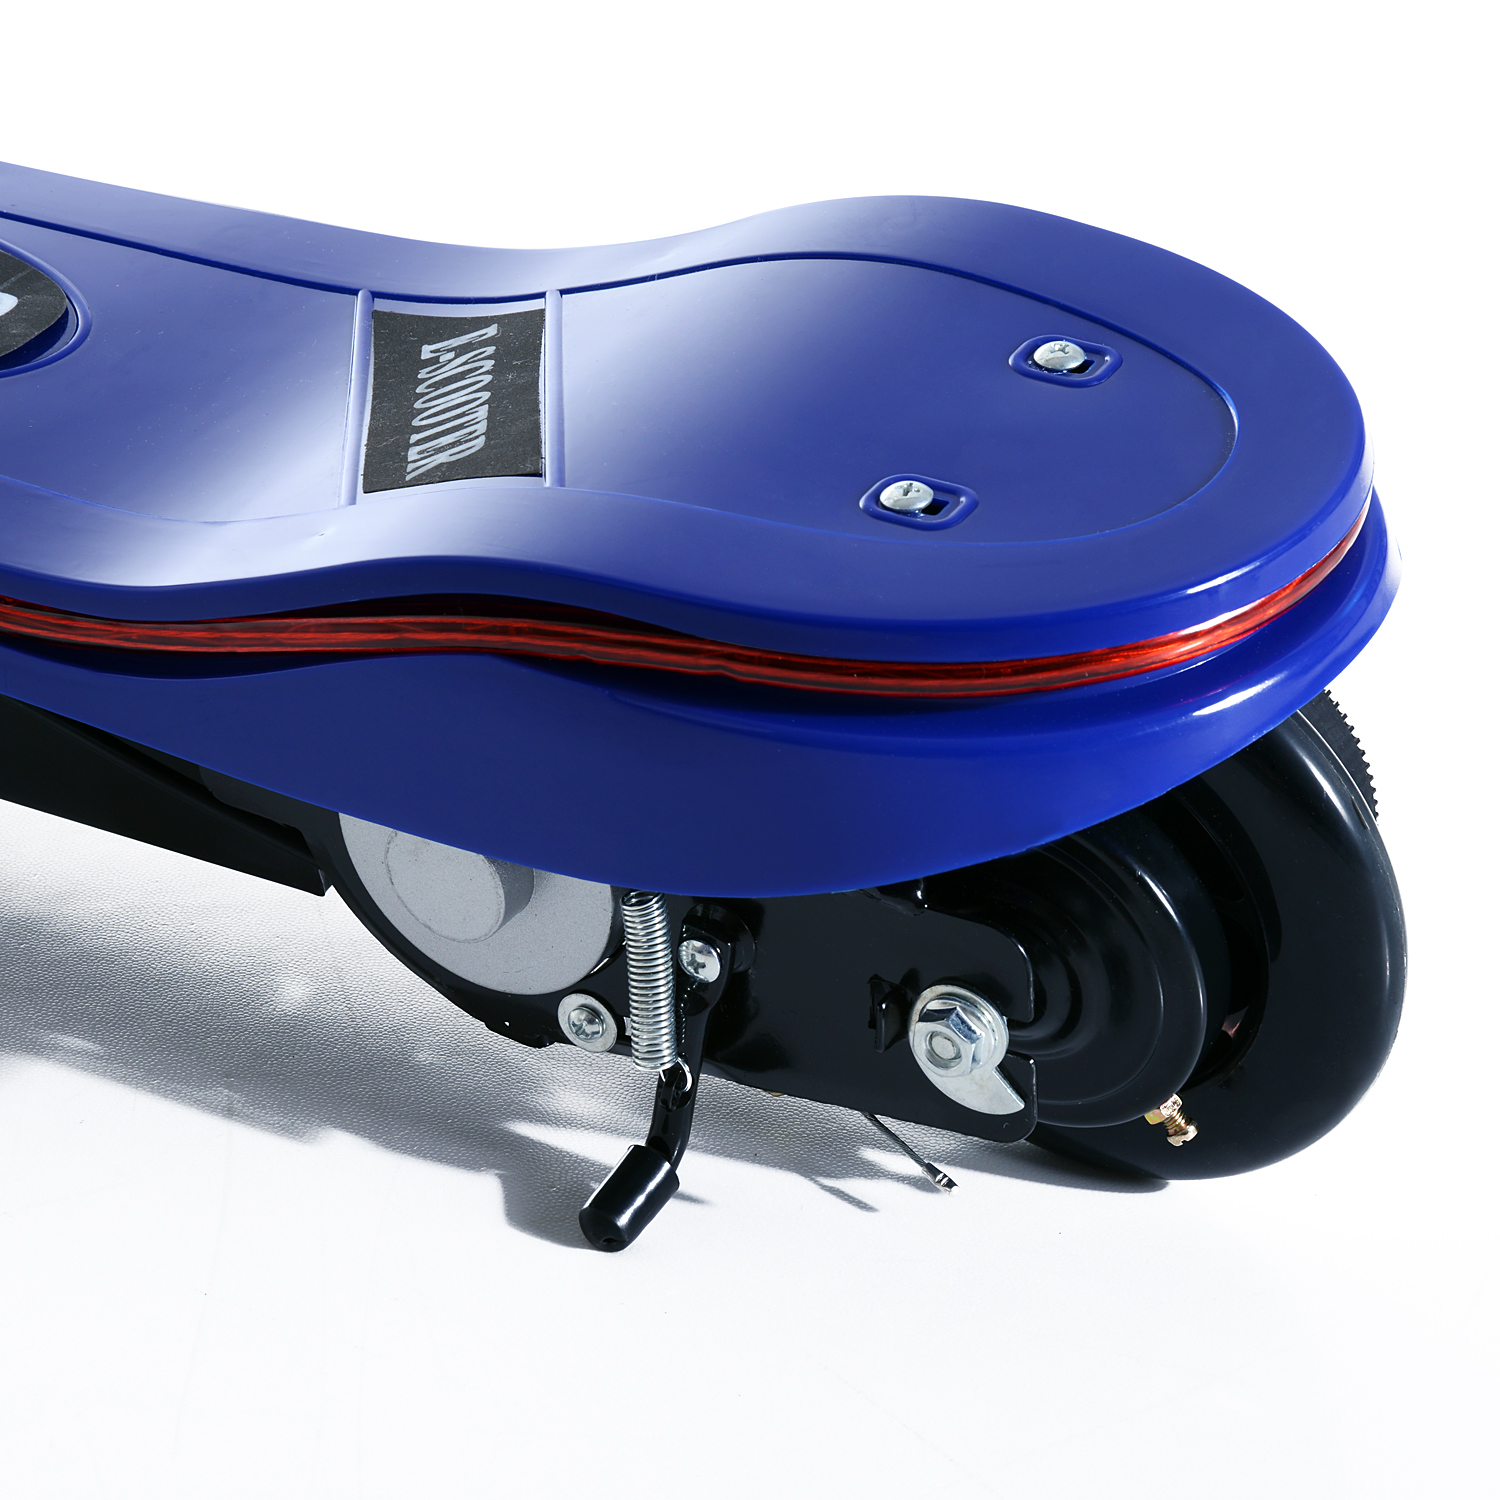 Electric-Scooter-Motorized-Bicycle-Battery-Powered-High-Performance